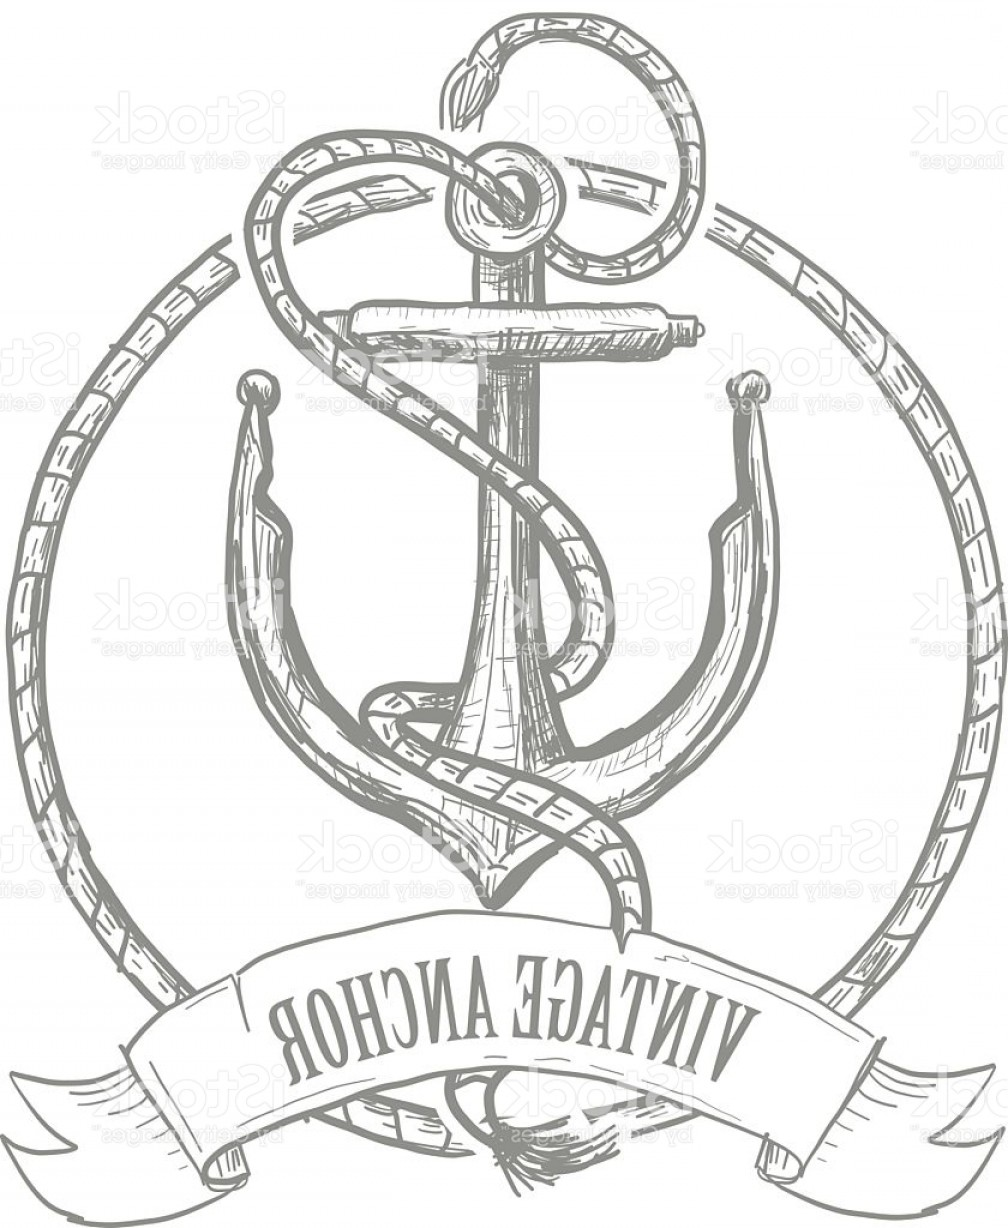 Design Vector Image Of Rope: Nautical Themed Anchor Design With Rope And Banner Gm